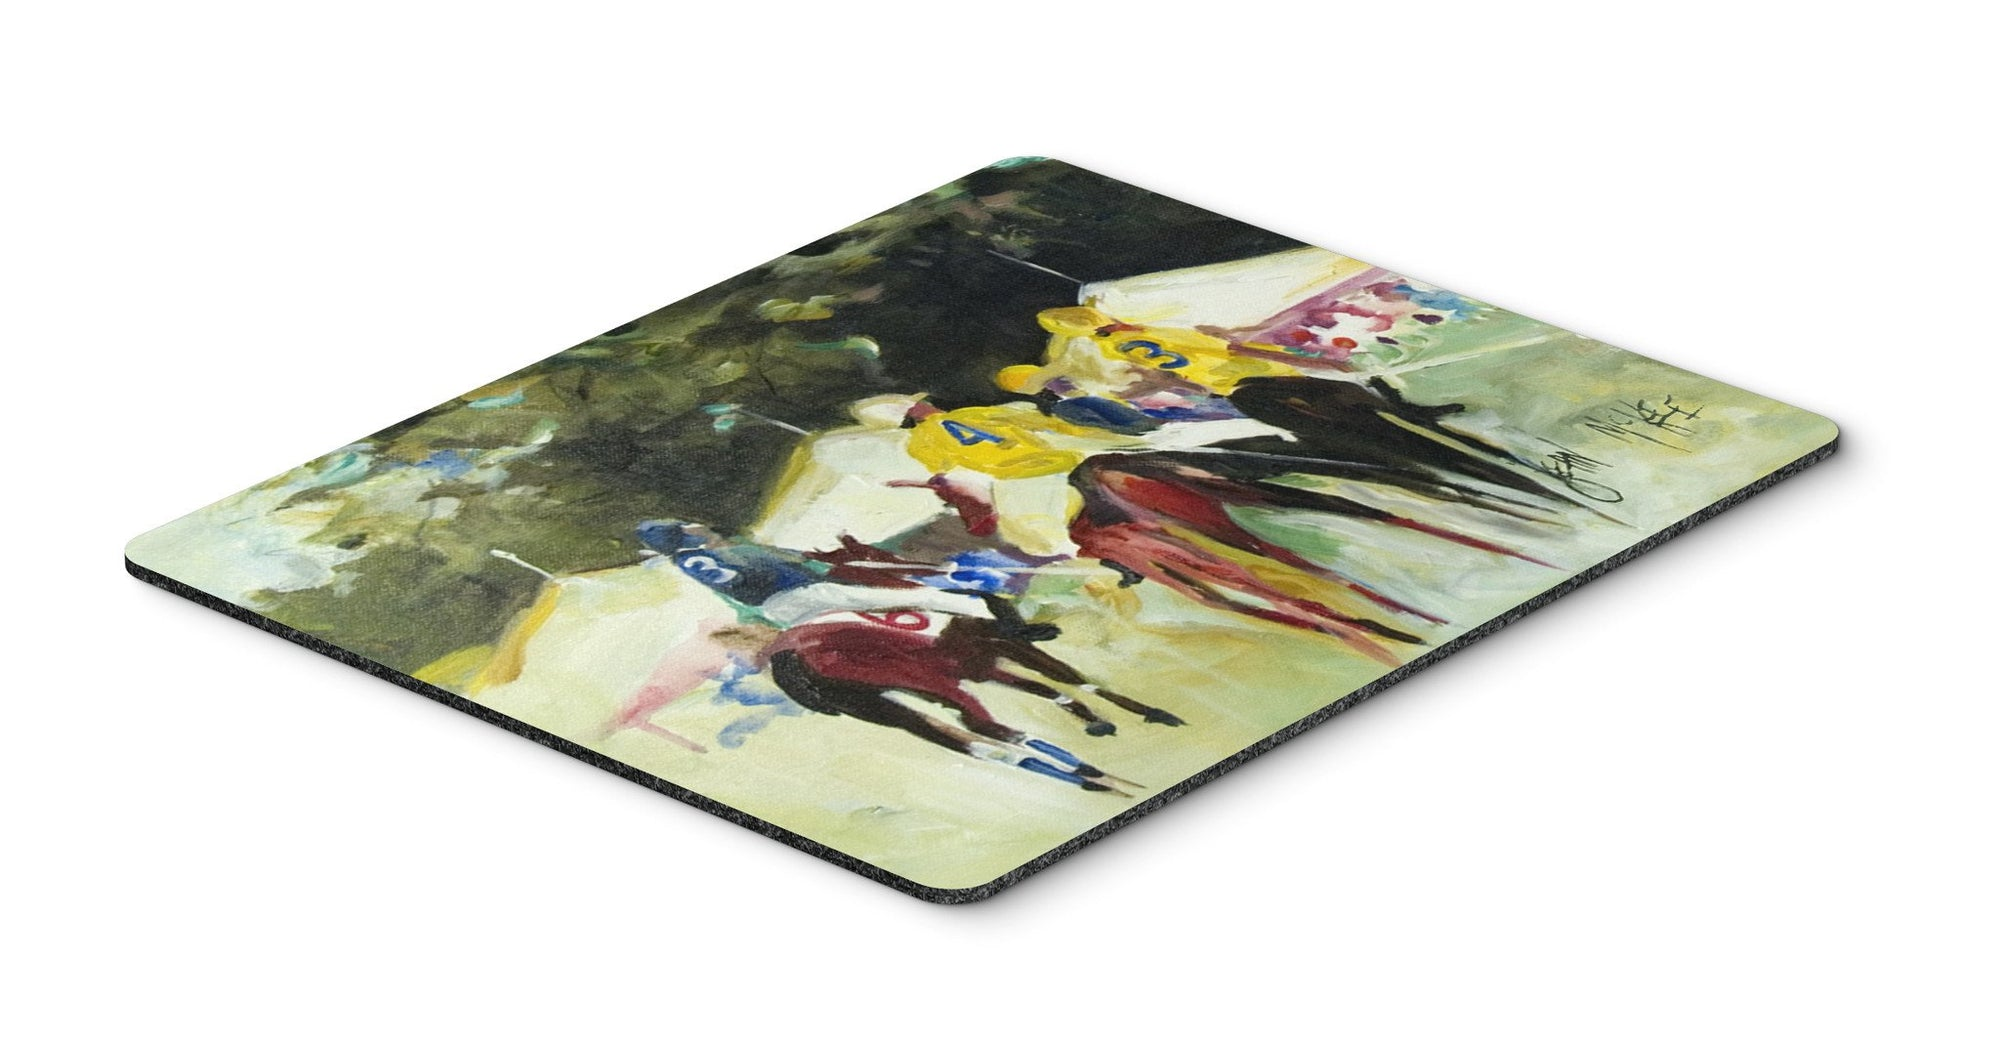 Buy this Polo at the Point Mouse Pad, Hot Pad or Trivet JMK1007MP